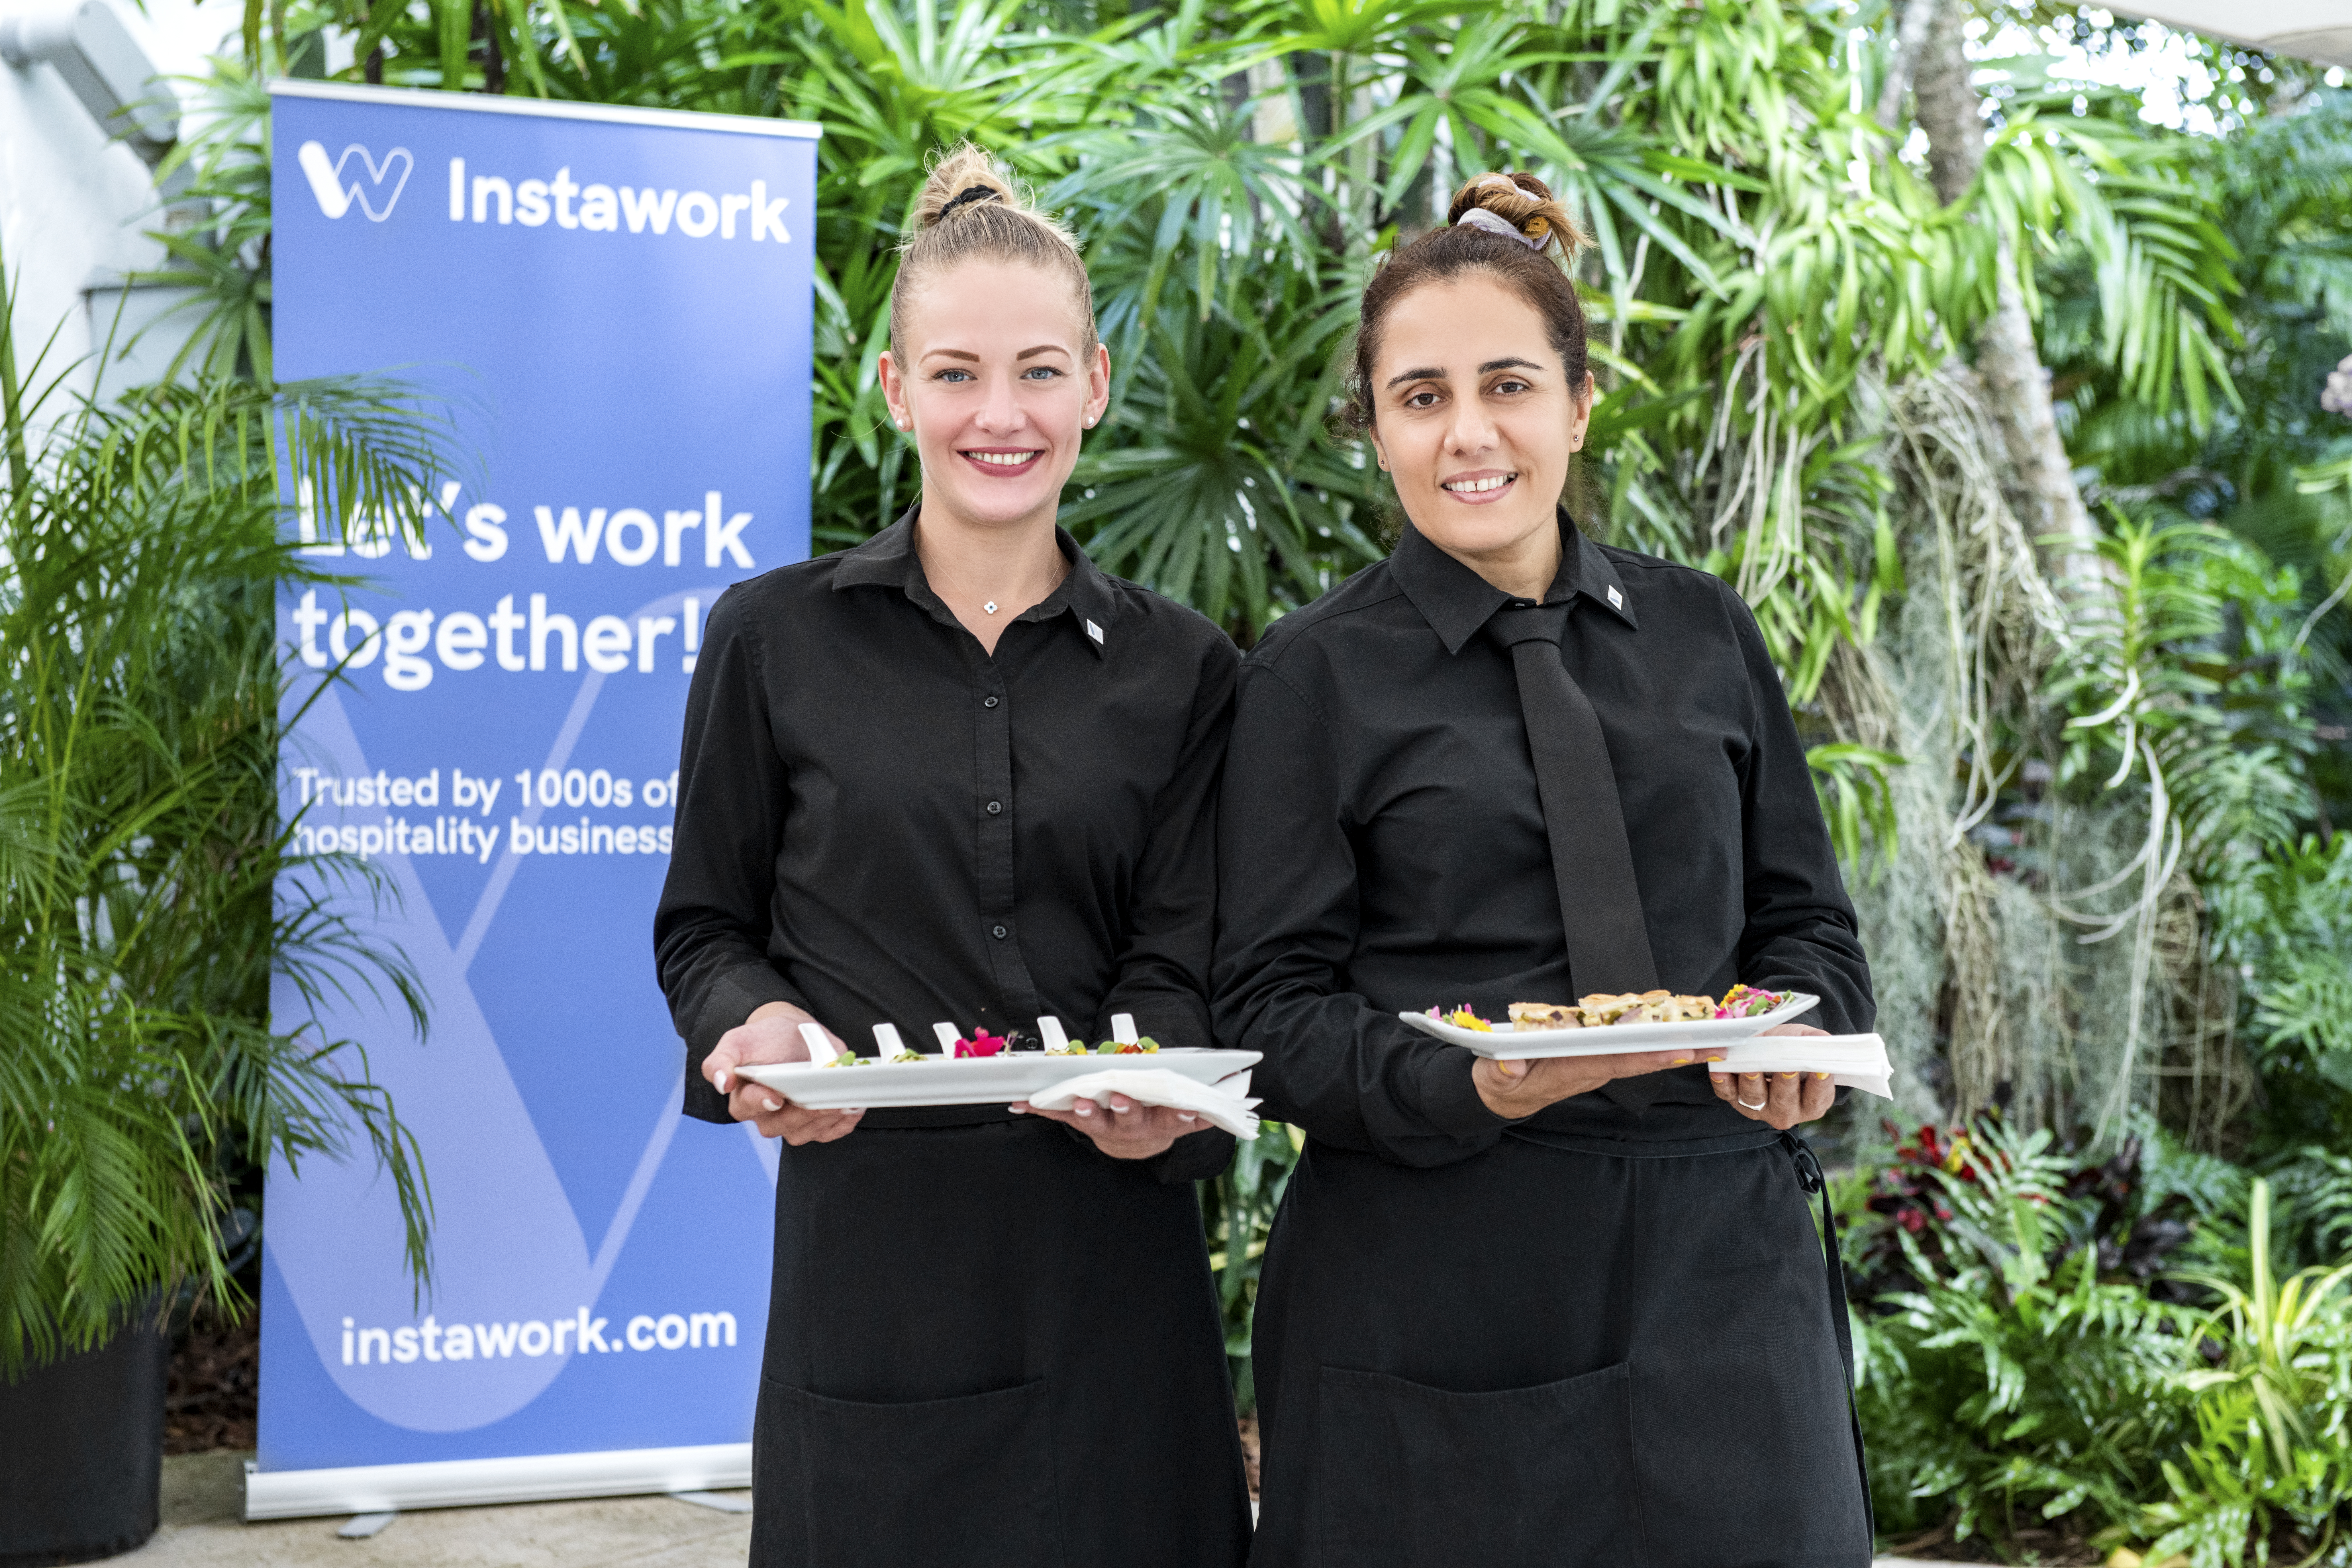 Hospitality staffing at Instawork